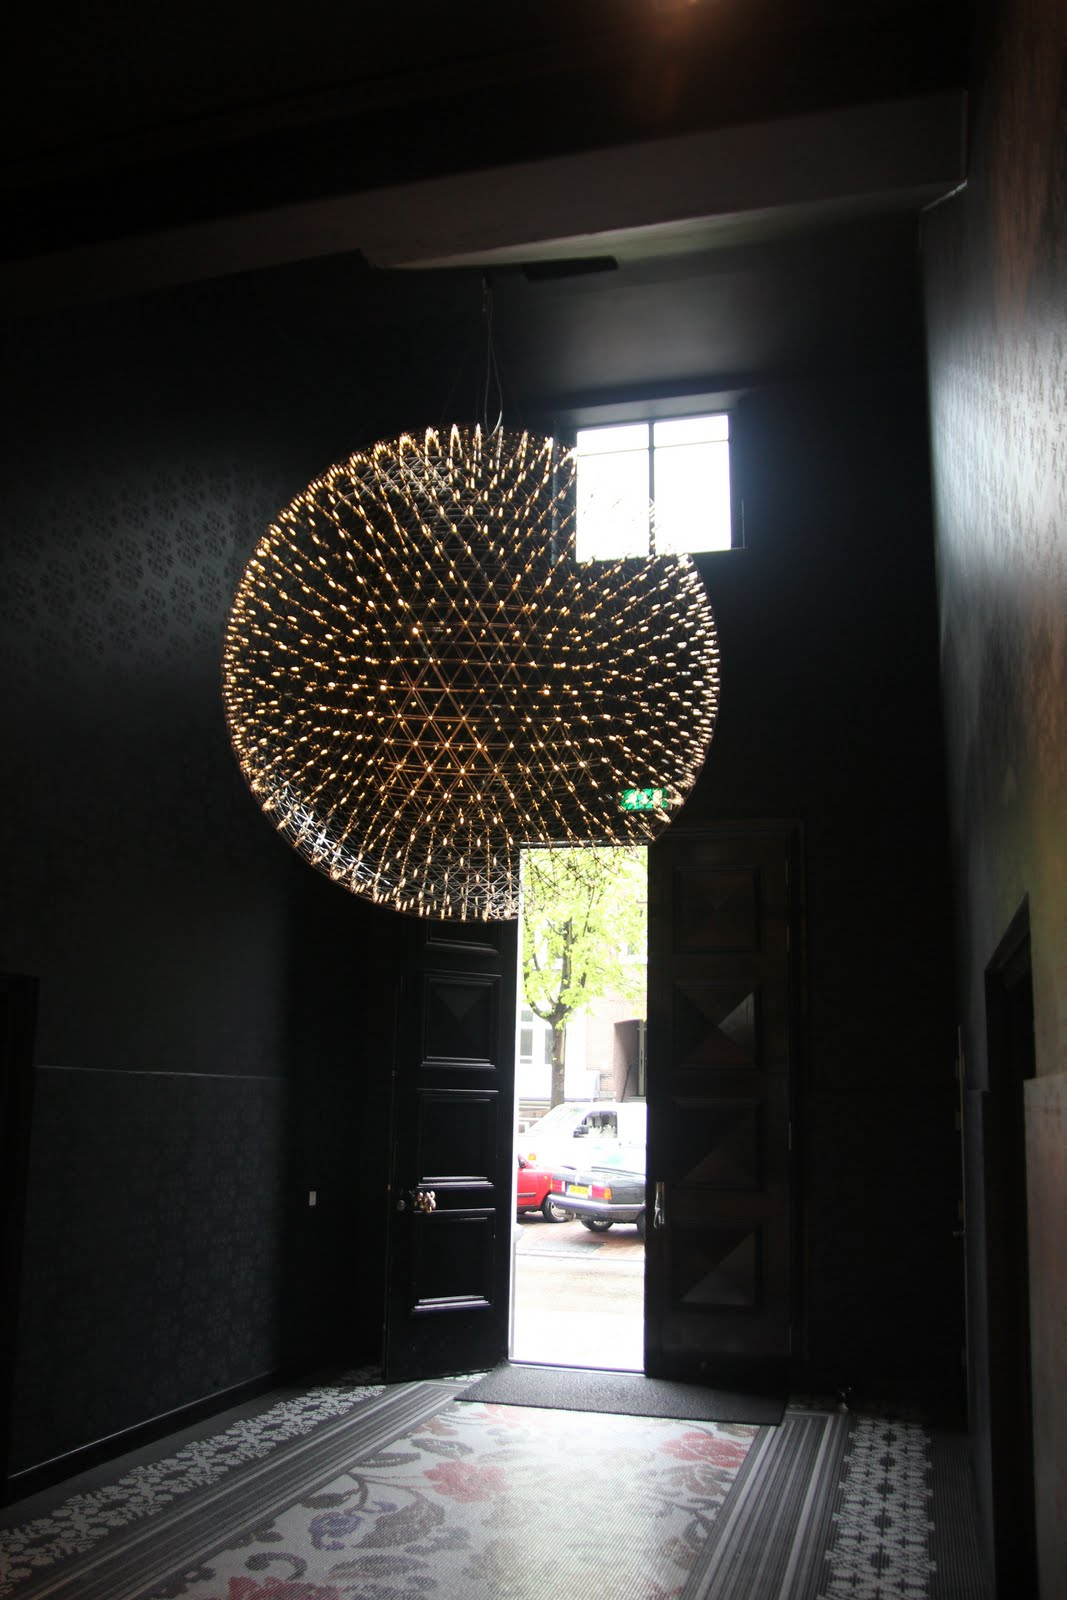 Moooi hang light pendant lamp by marcel wanders stardust - Raimond Lamp By Raimond Puts For Moooi Click Above Raimond Lamp Image To Enlarge Available Through Stardust Com